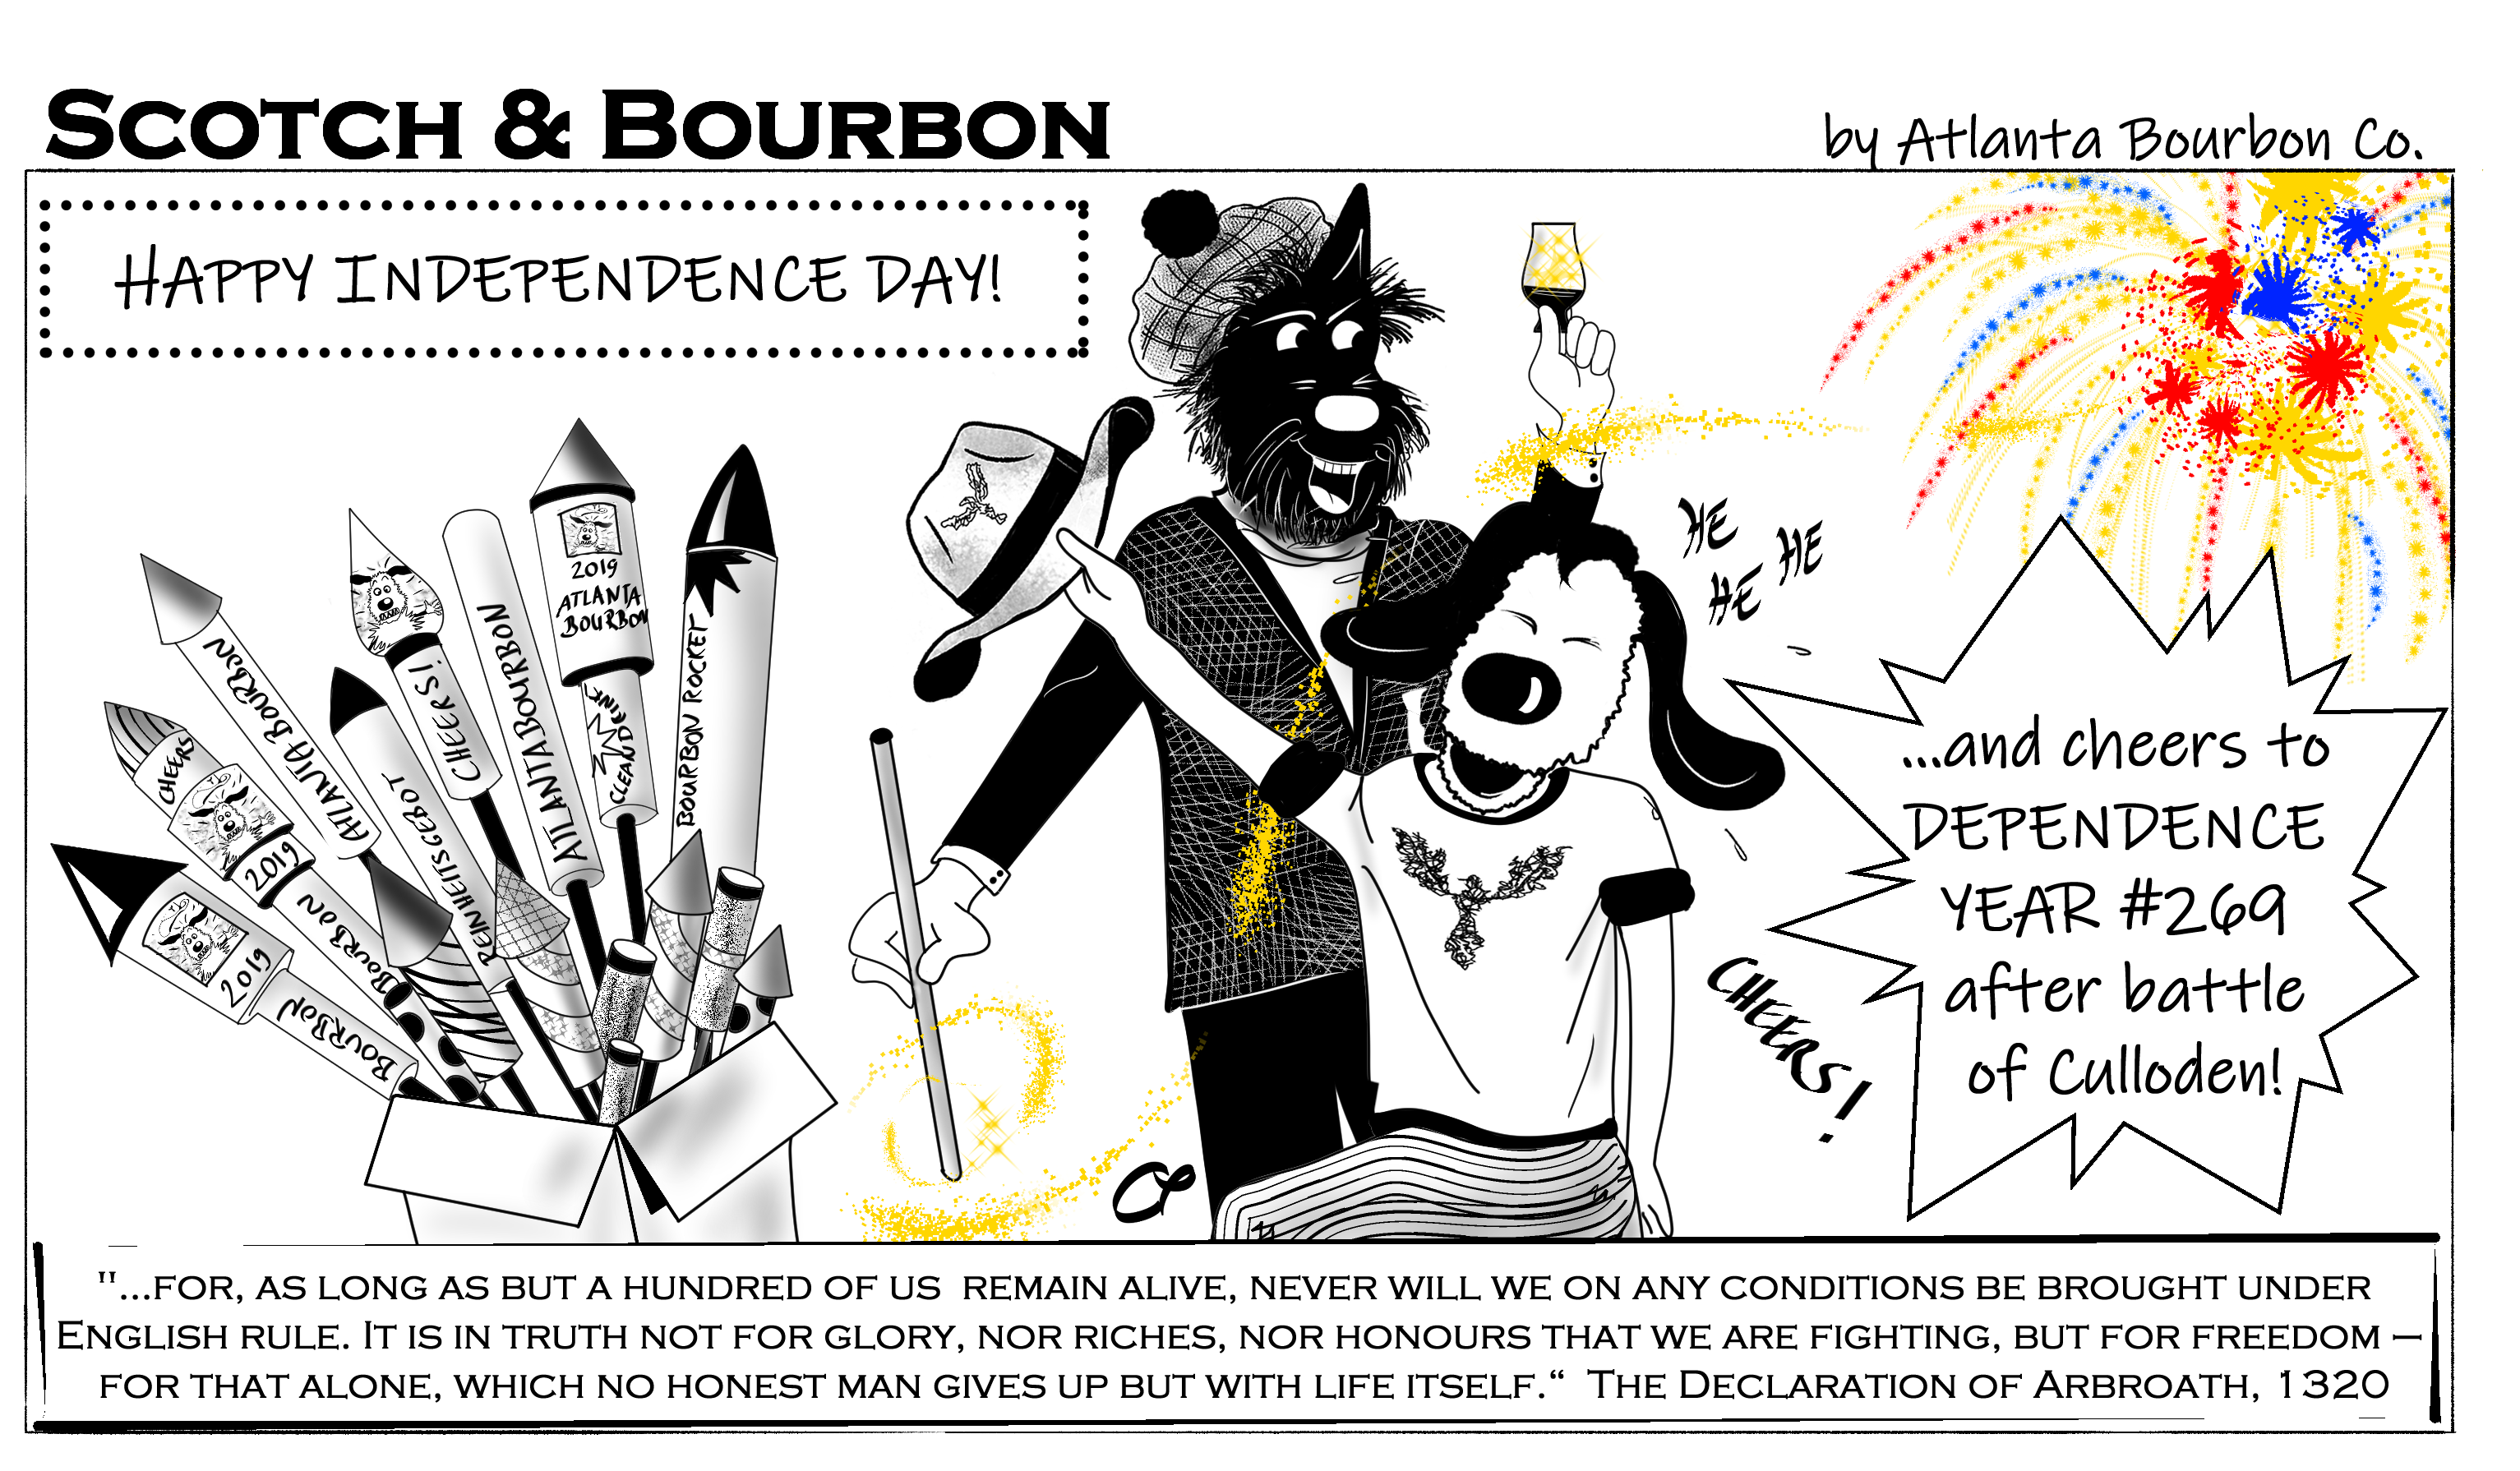 Scotch_Bourbon_Cartoon_IndependenceDay-DependenceYear269